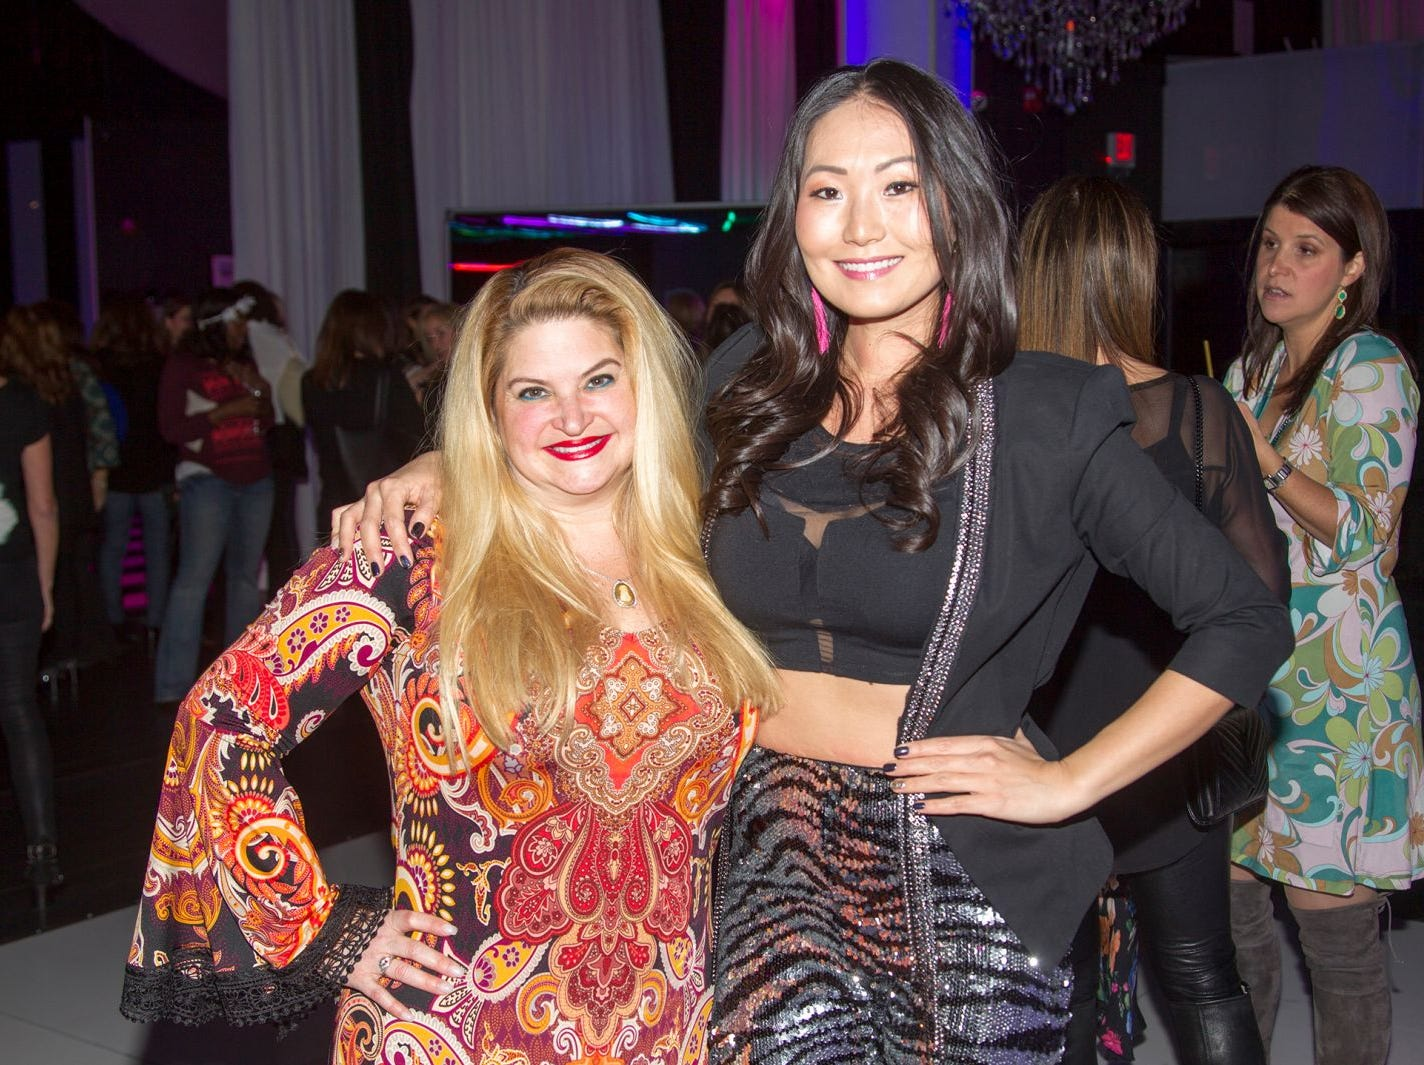 Beverkey Levinson, Mina Barany. Jewish Federation of Northern New Jersey held its first Girl's Night Out dance party at Space in Englewood. 01/24/2019